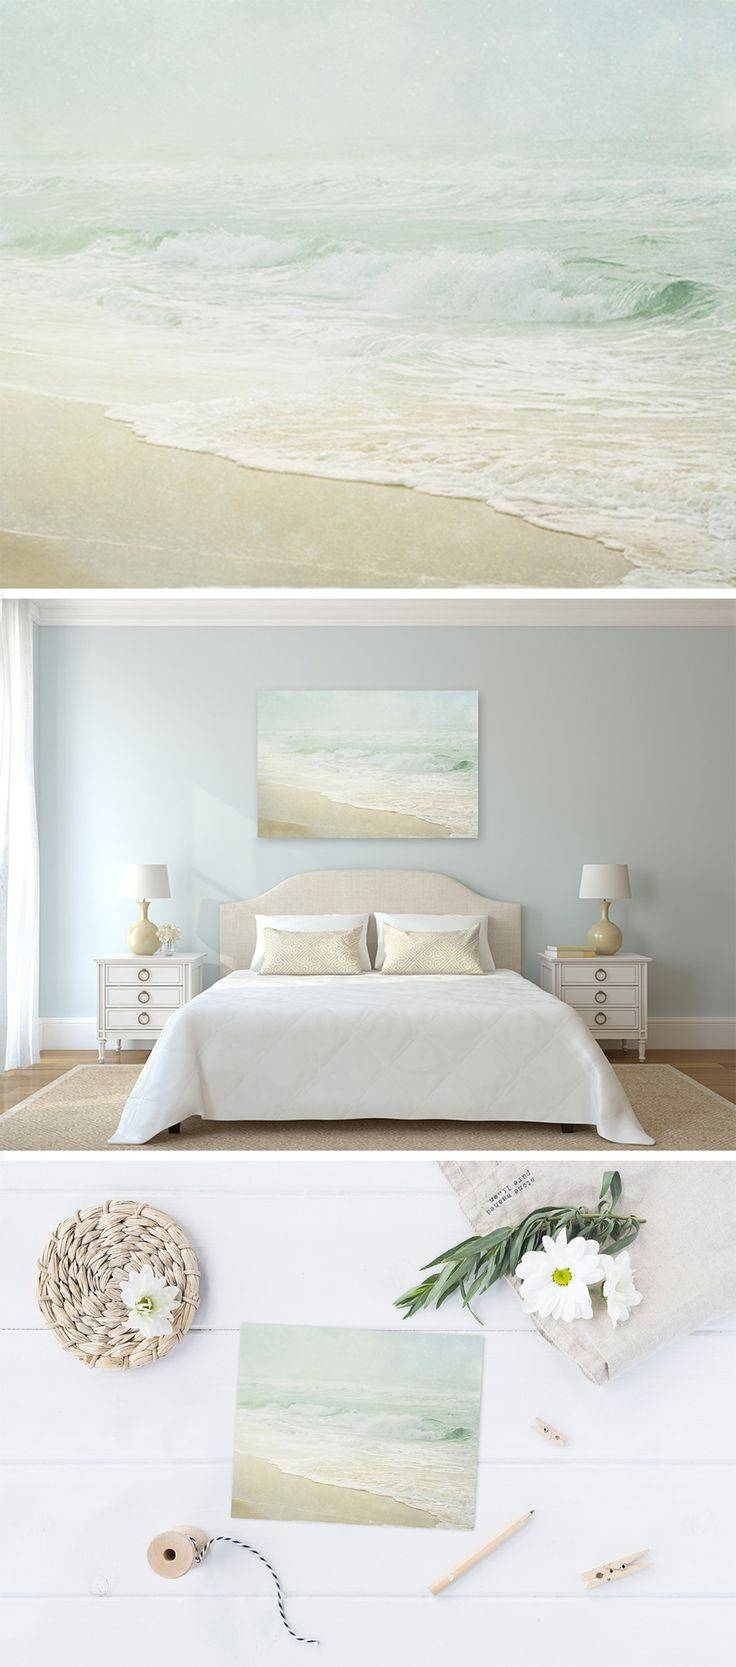 Best 25+ Coastal Wall Art Ideas On Pinterest | Coastal Inspired For Most Recent Beach Cottage Wall Art (View 10 of 25)